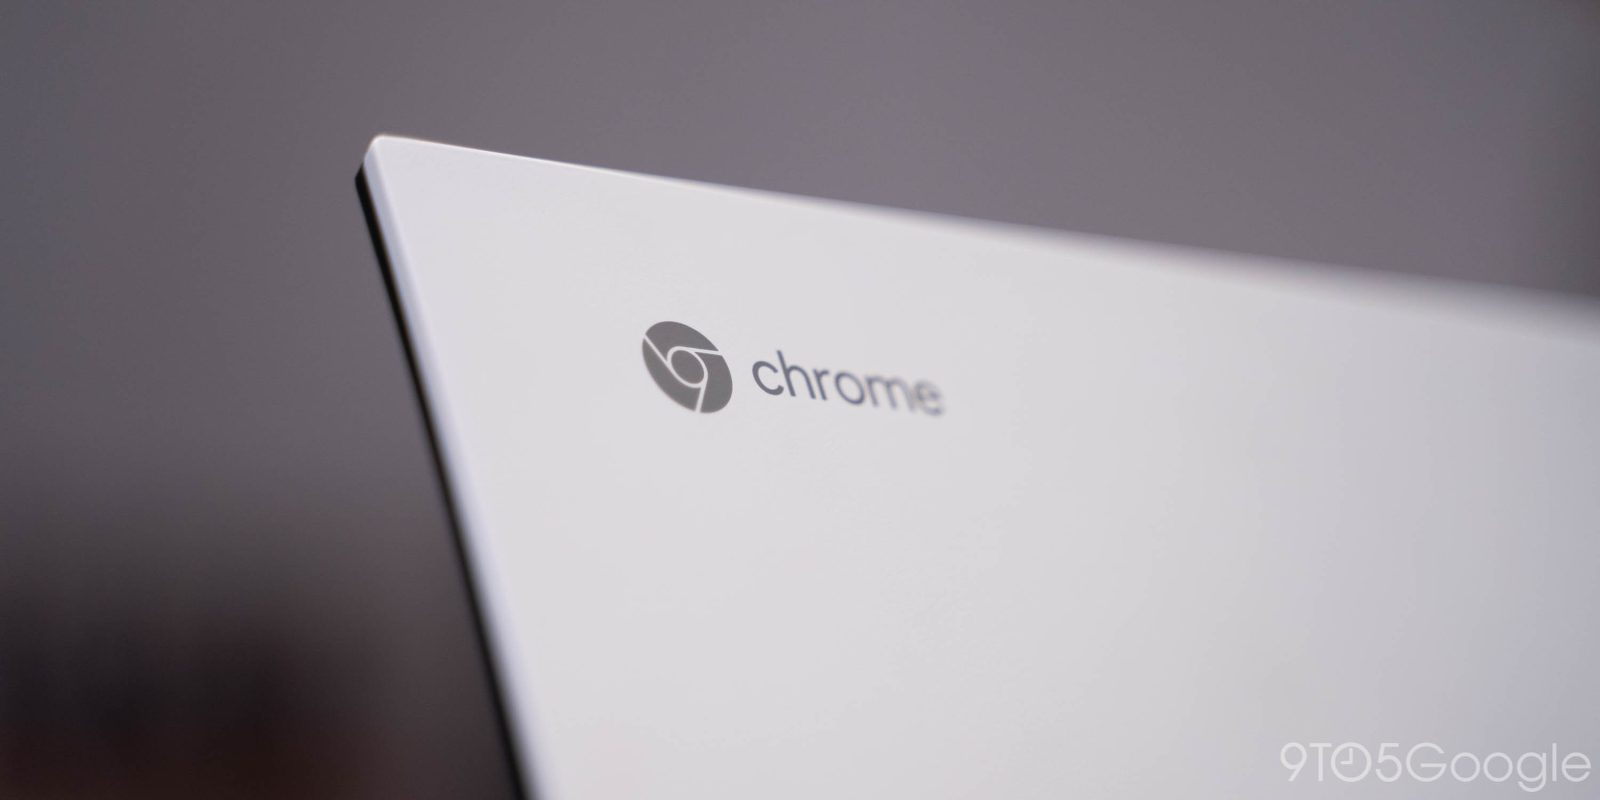 RIP Windows 7: Could a Chromebook replace your now-outdated laptop?